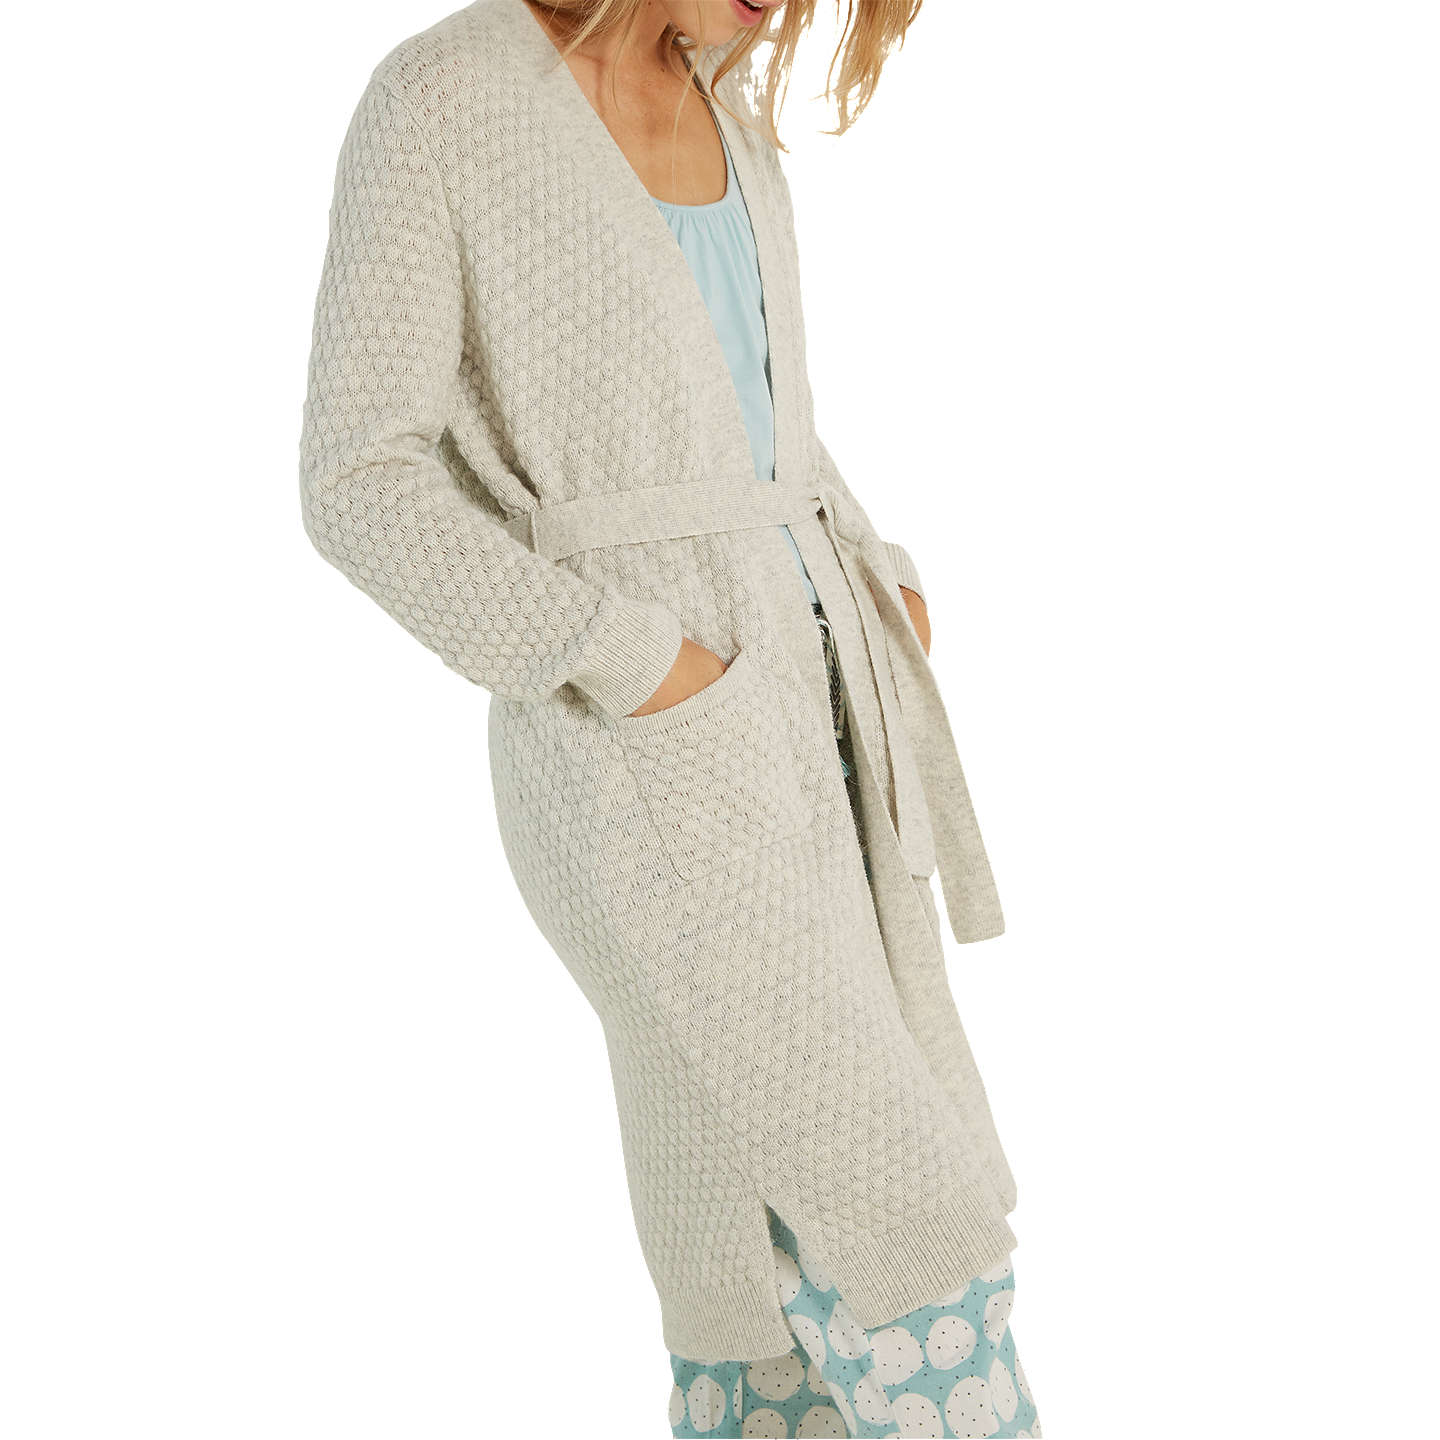 BuyWhite Stuff Cosy Knit Cardigan, Light Grey, S Online at johnlewis.com